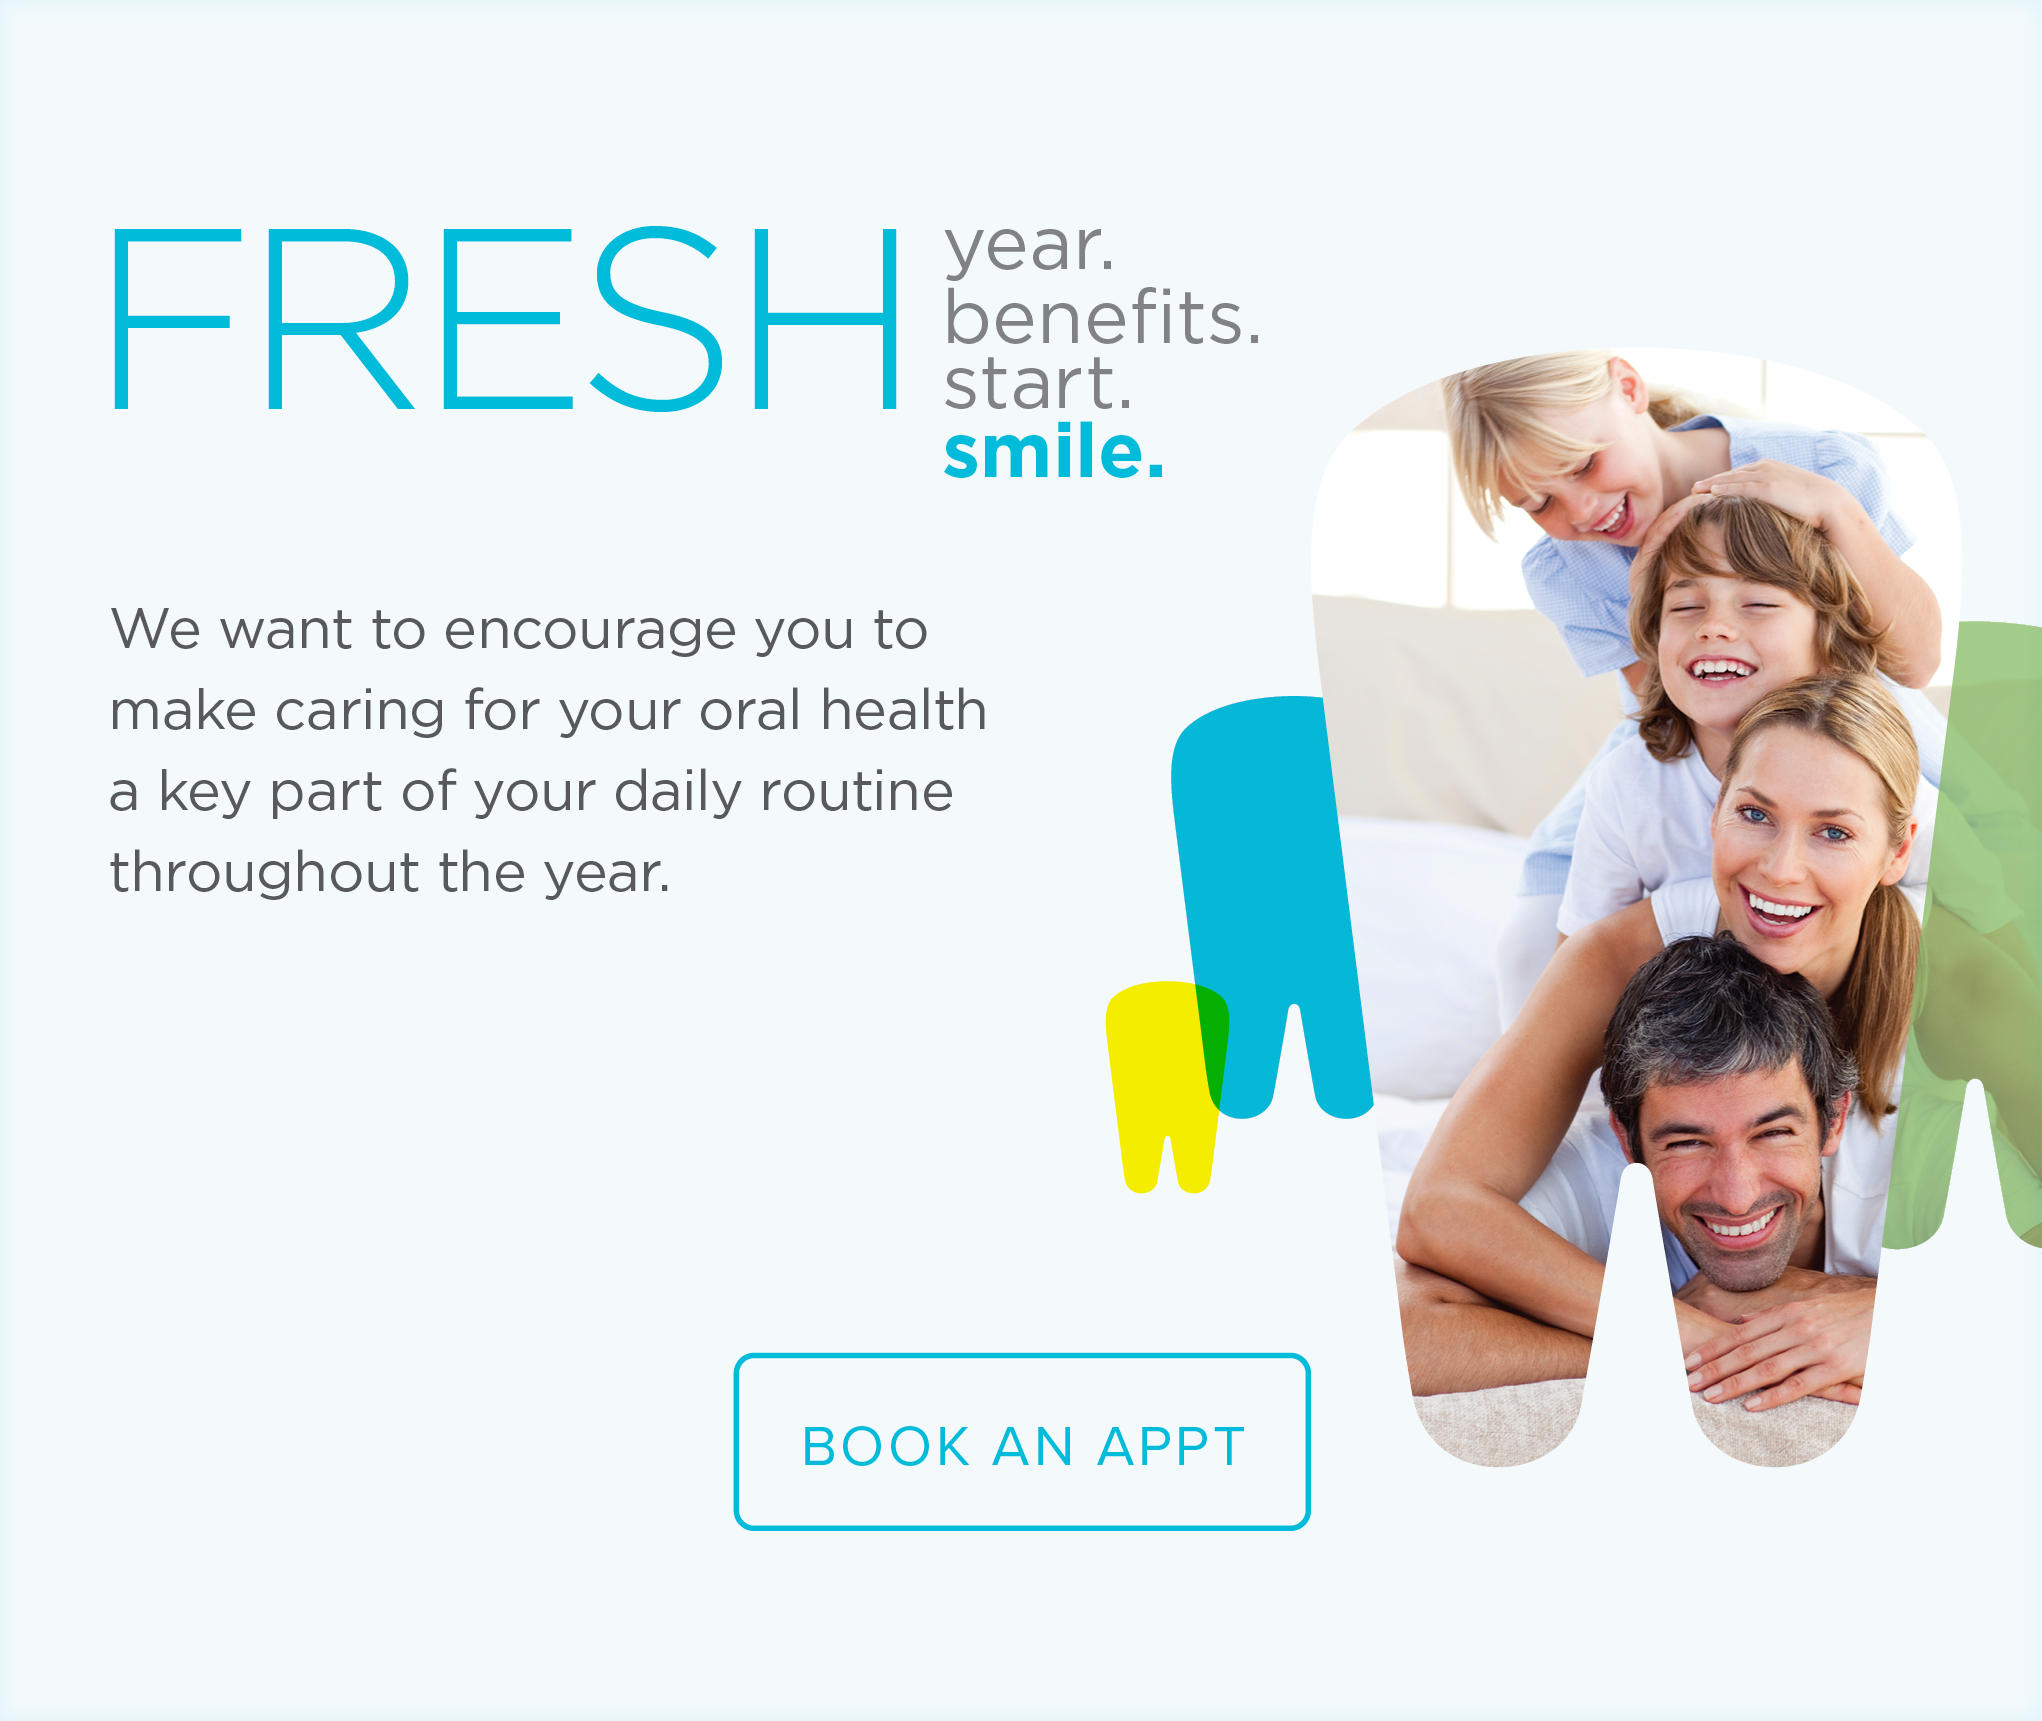 Katy Modern Dentistry and Orthodontics - Make the Most of Your Benefits